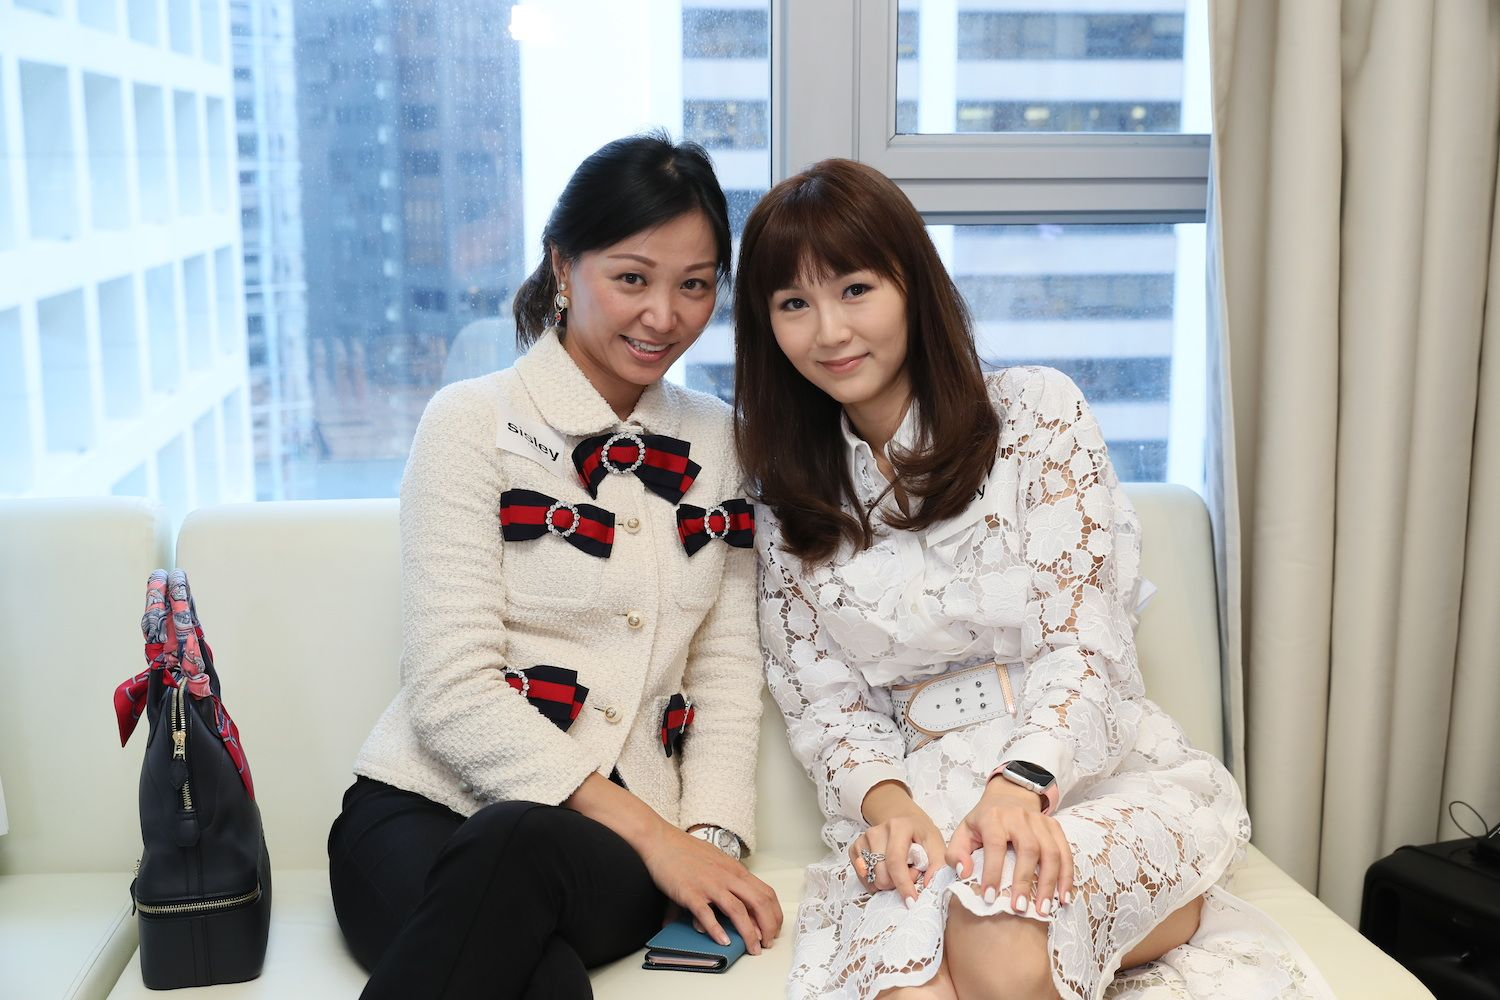 Michelle Cheng-Chan and Helena Pong